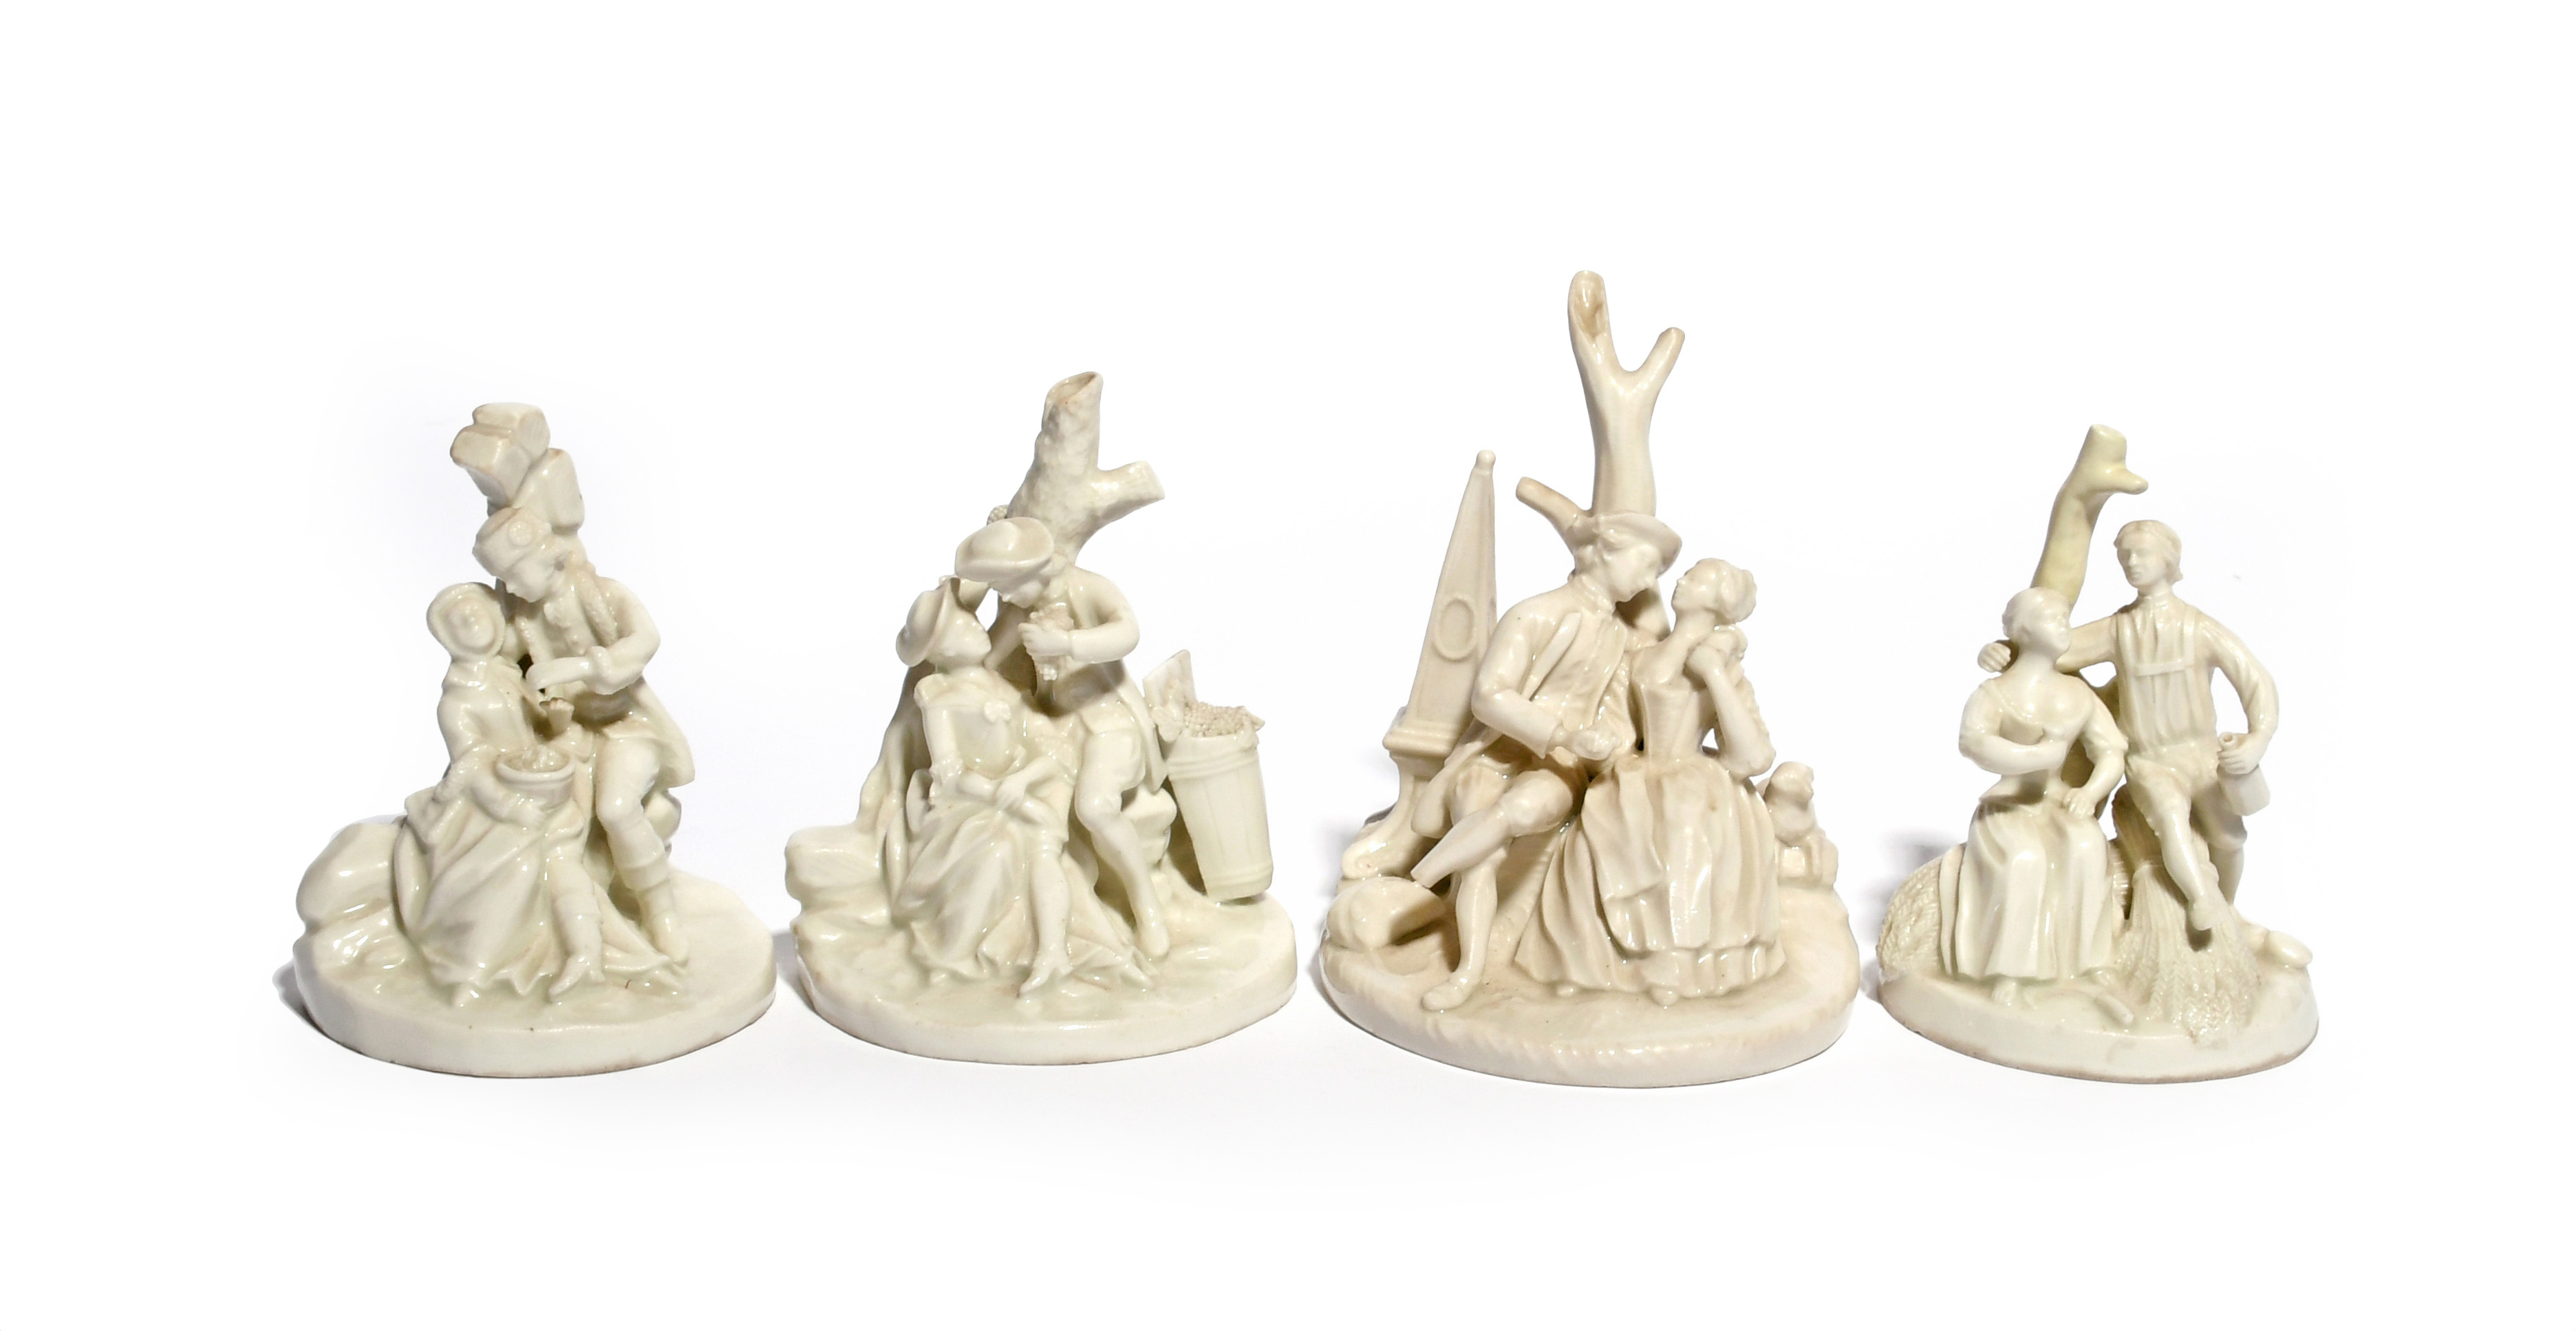 A set of four small Continental porcelain figure groups of the Seasons c.1770-90, each depicting a